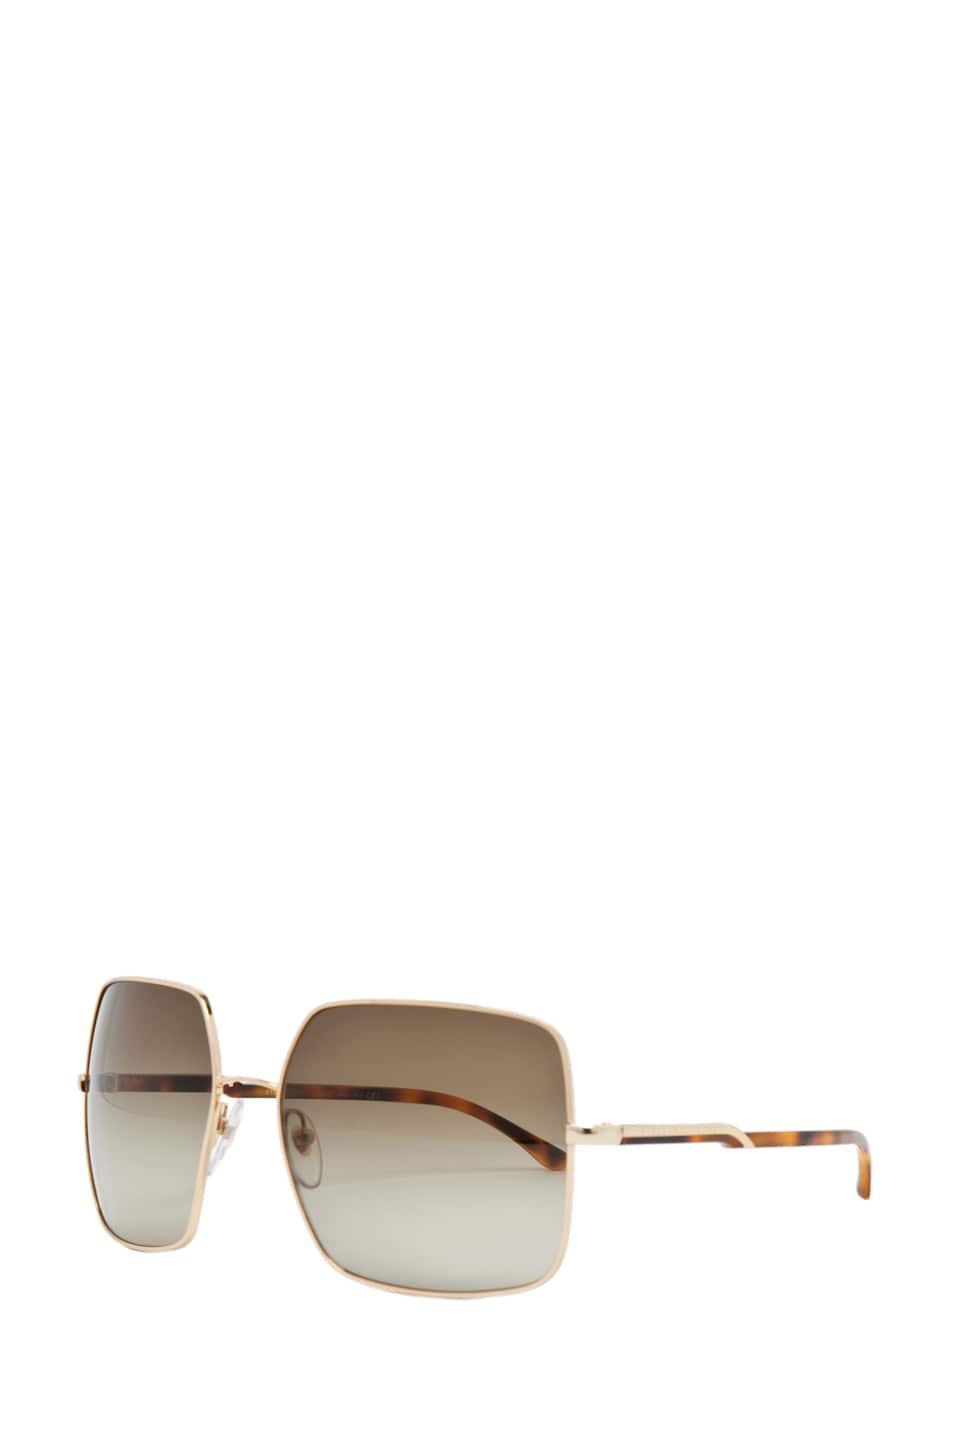 Image 2 of Stella McCartney Sunglasses in Blonde Tortoise